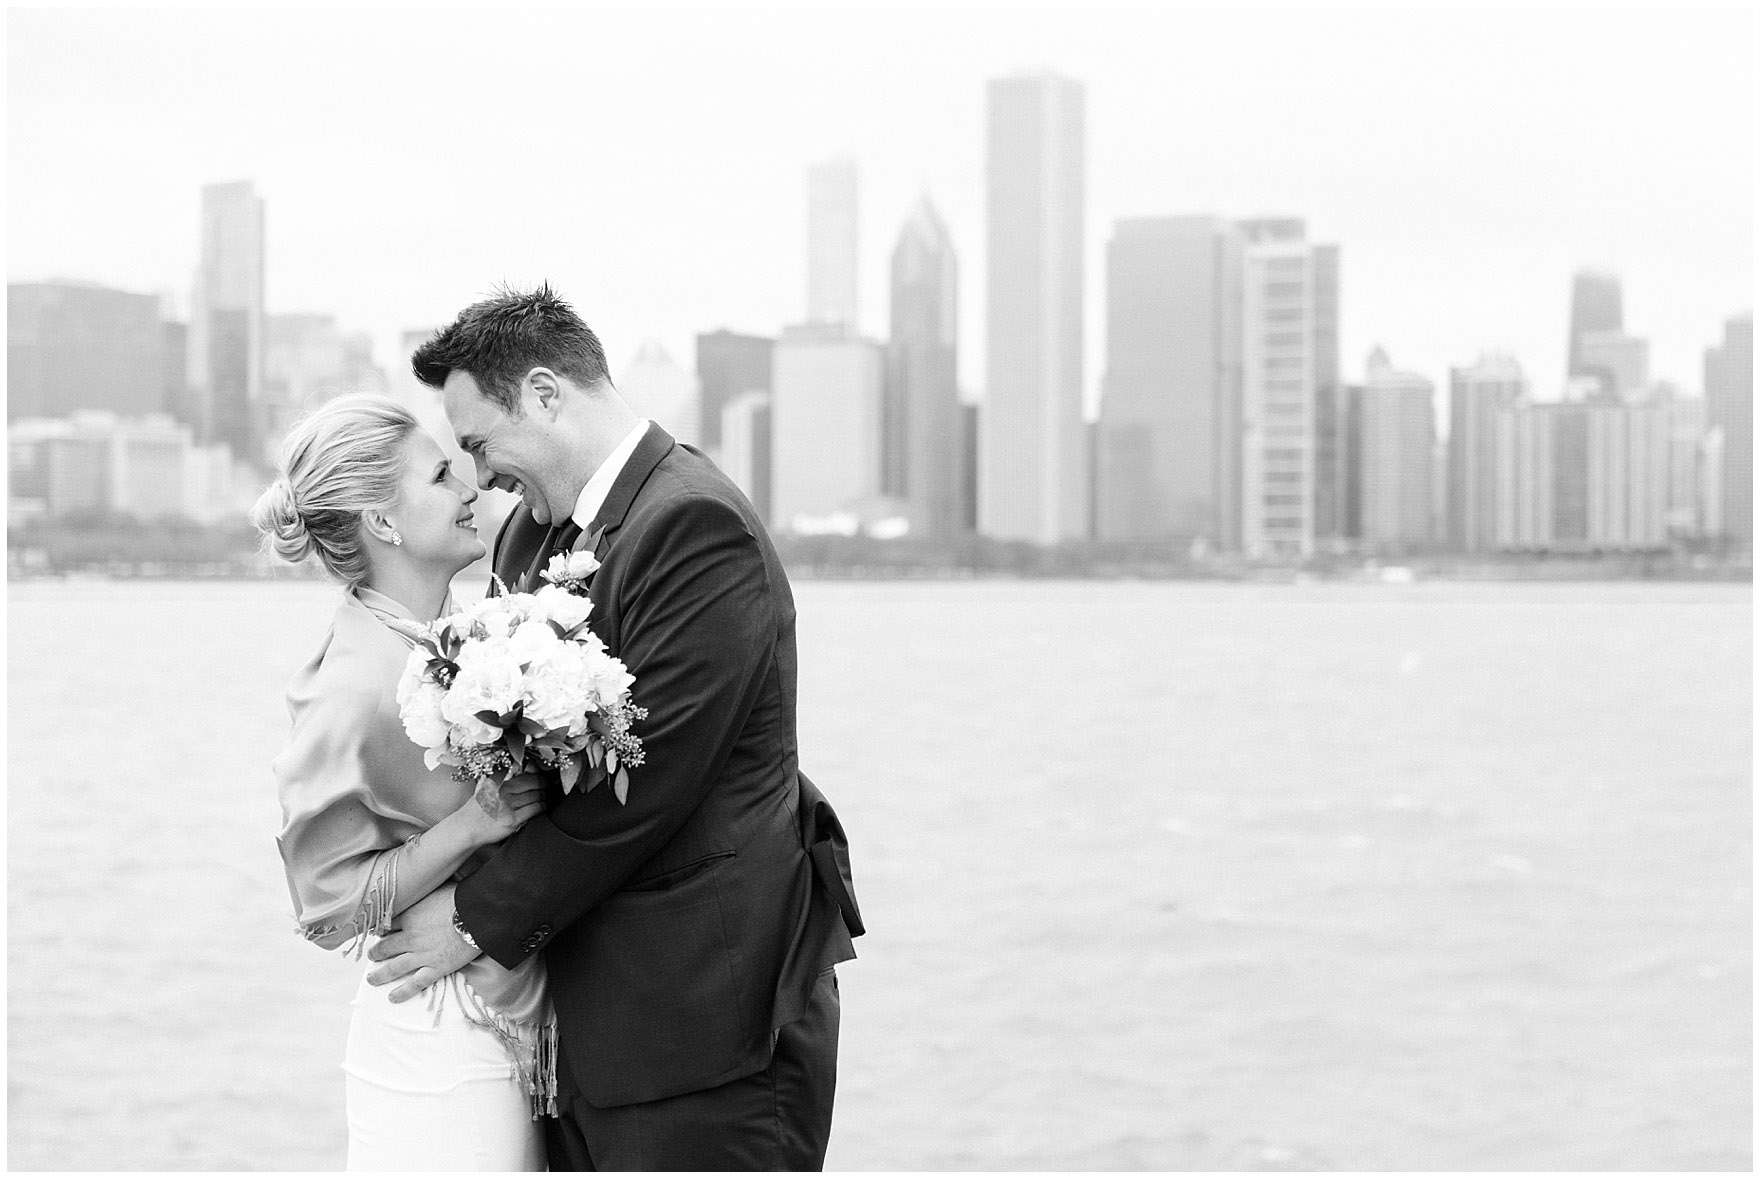 A bride and groom embrace along the windy lakefront prior to their Ovation Chicago wedding.